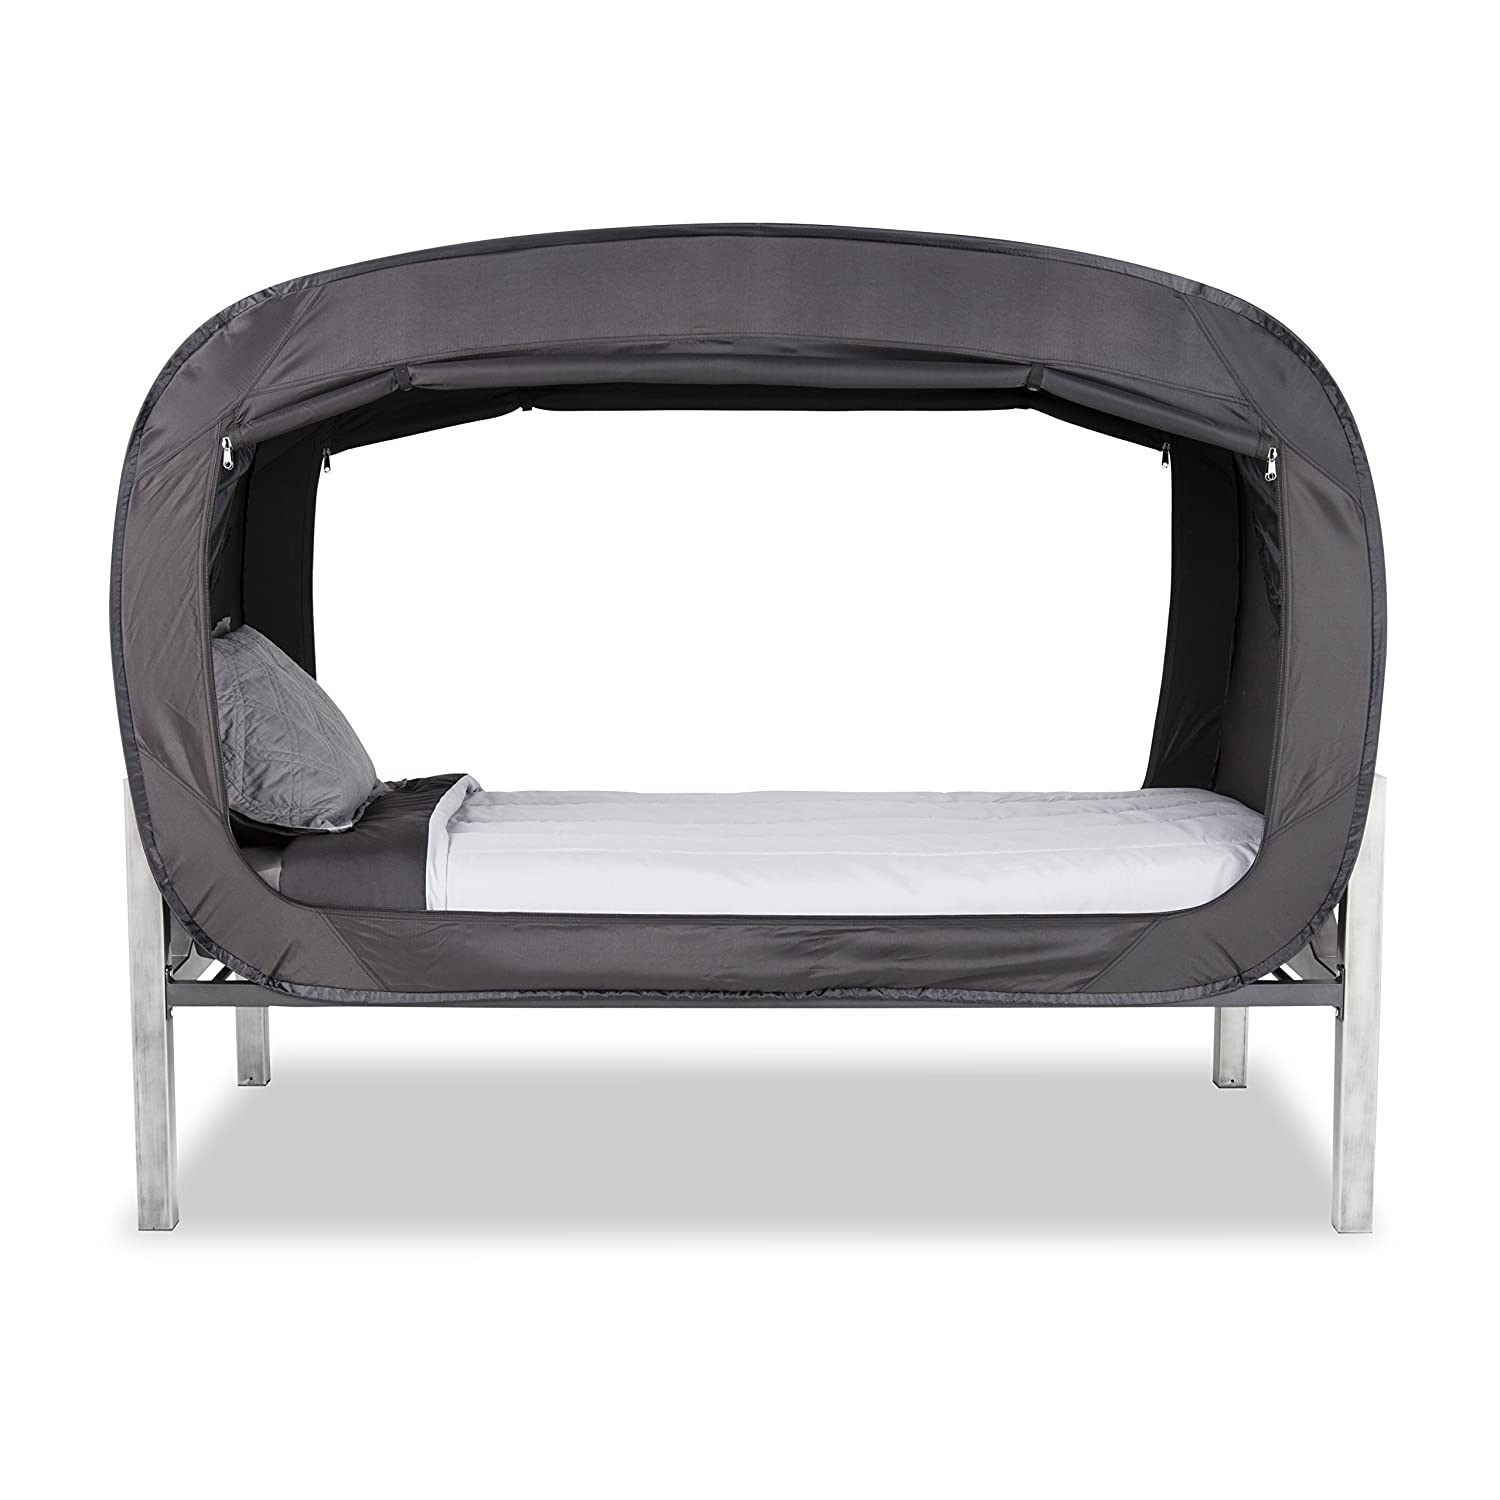 Exceptional Privacy Pop Bed Tent Part - 3: Amazon.com